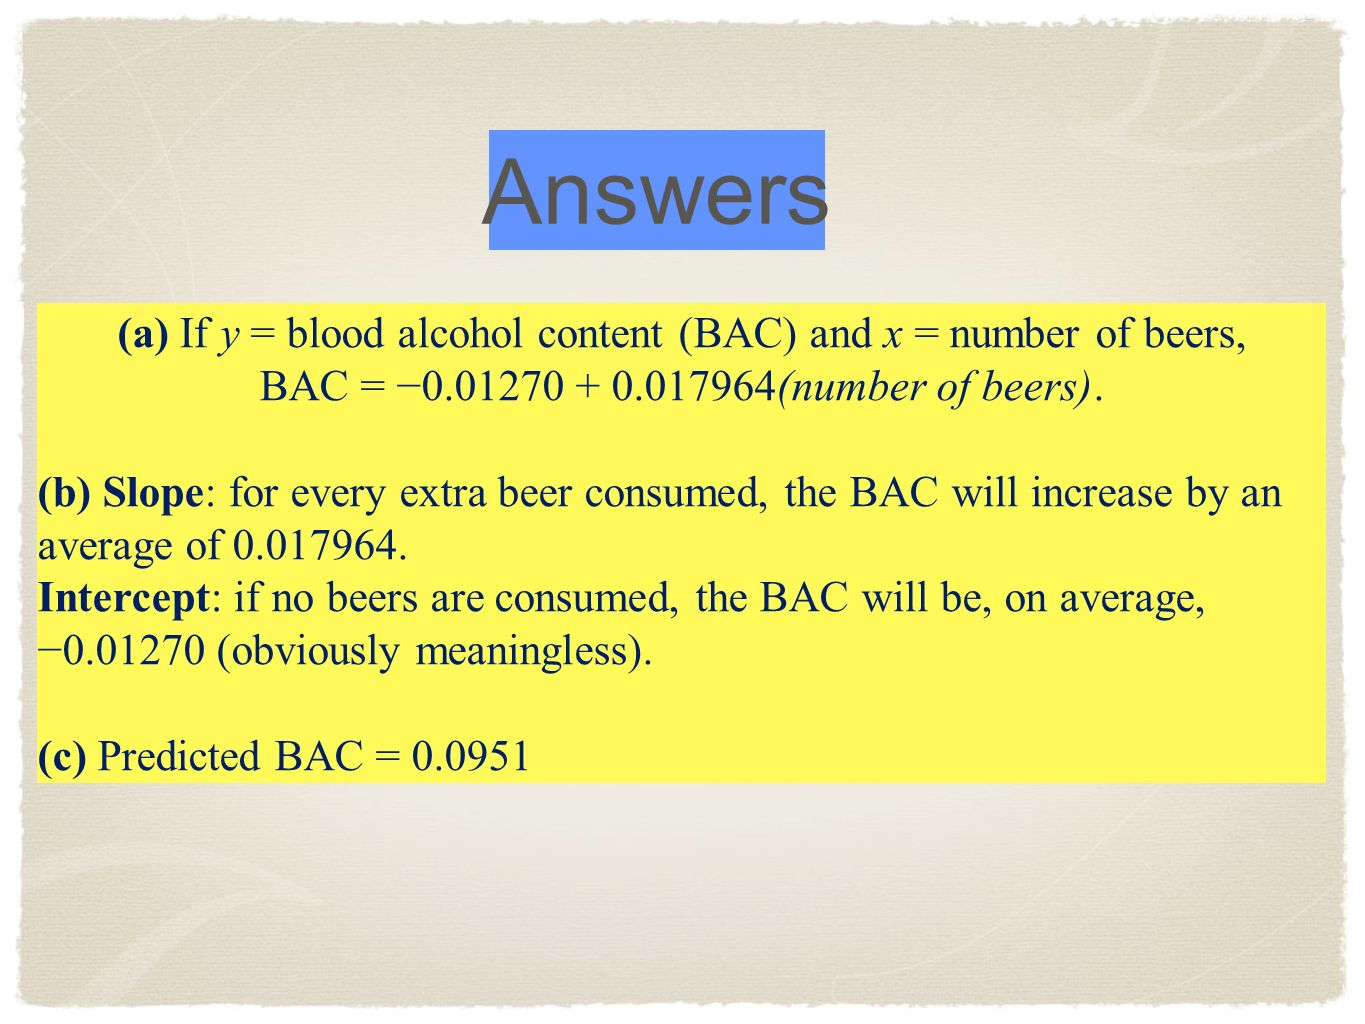 Answers (a) If y = blood alcohol content (BAC) and x = number of beers, BAC = − (number of beers).